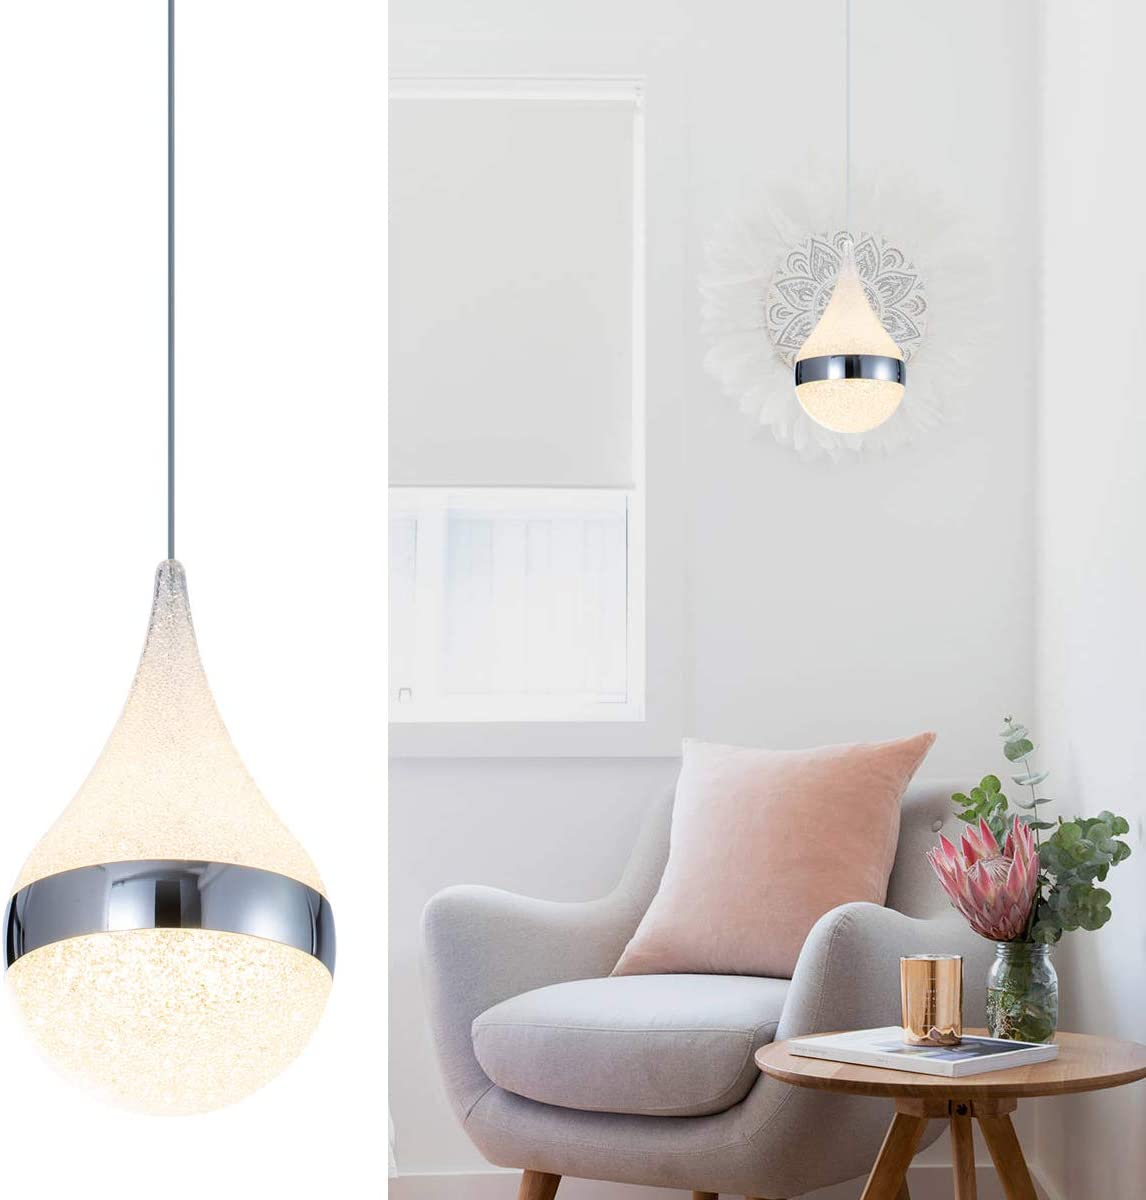 Modern Kitchen Island Pendant Lighting, Adjustable LED Drop Pendant Light with Silver Plating Nickel Finish Acrylic Shade for Dining Rooms 6W, Warm White 3000K